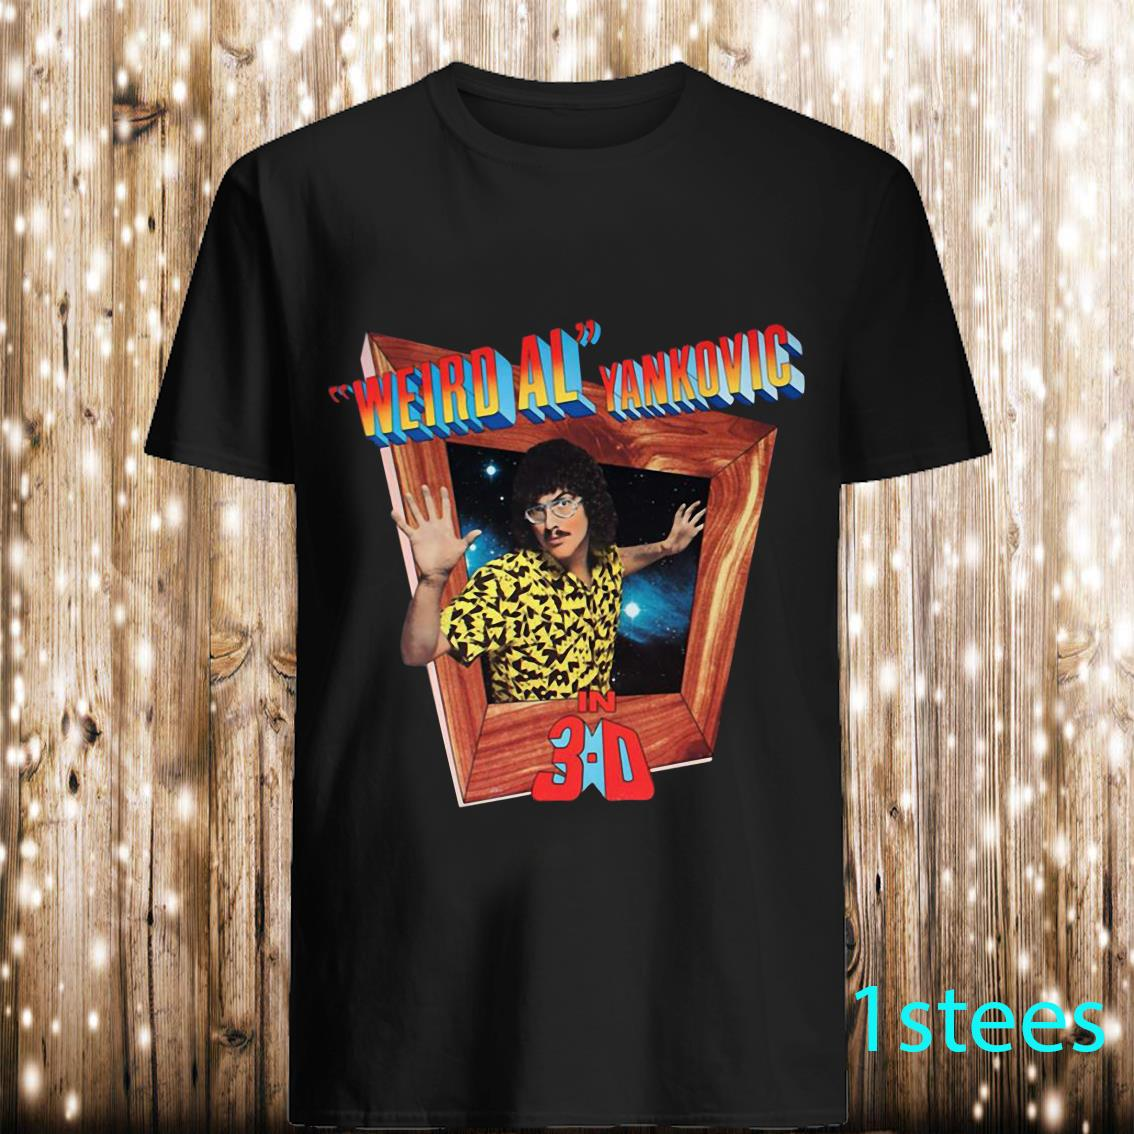 Weird AL Yankovic in 3D Graphic Shirt